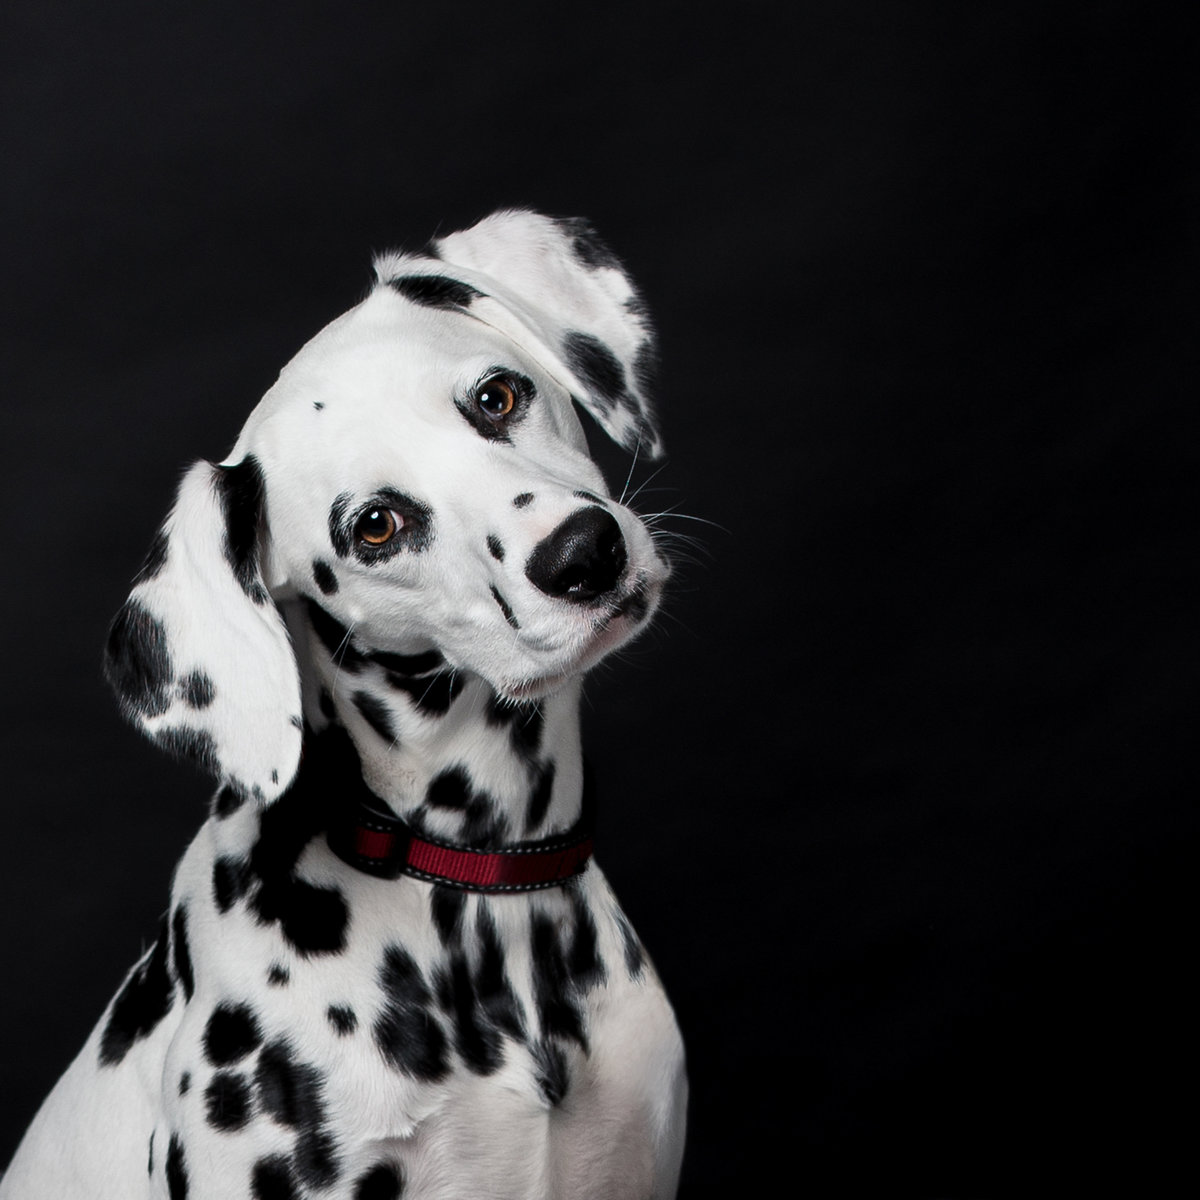 Dalmatian dog with head tilt on a black background